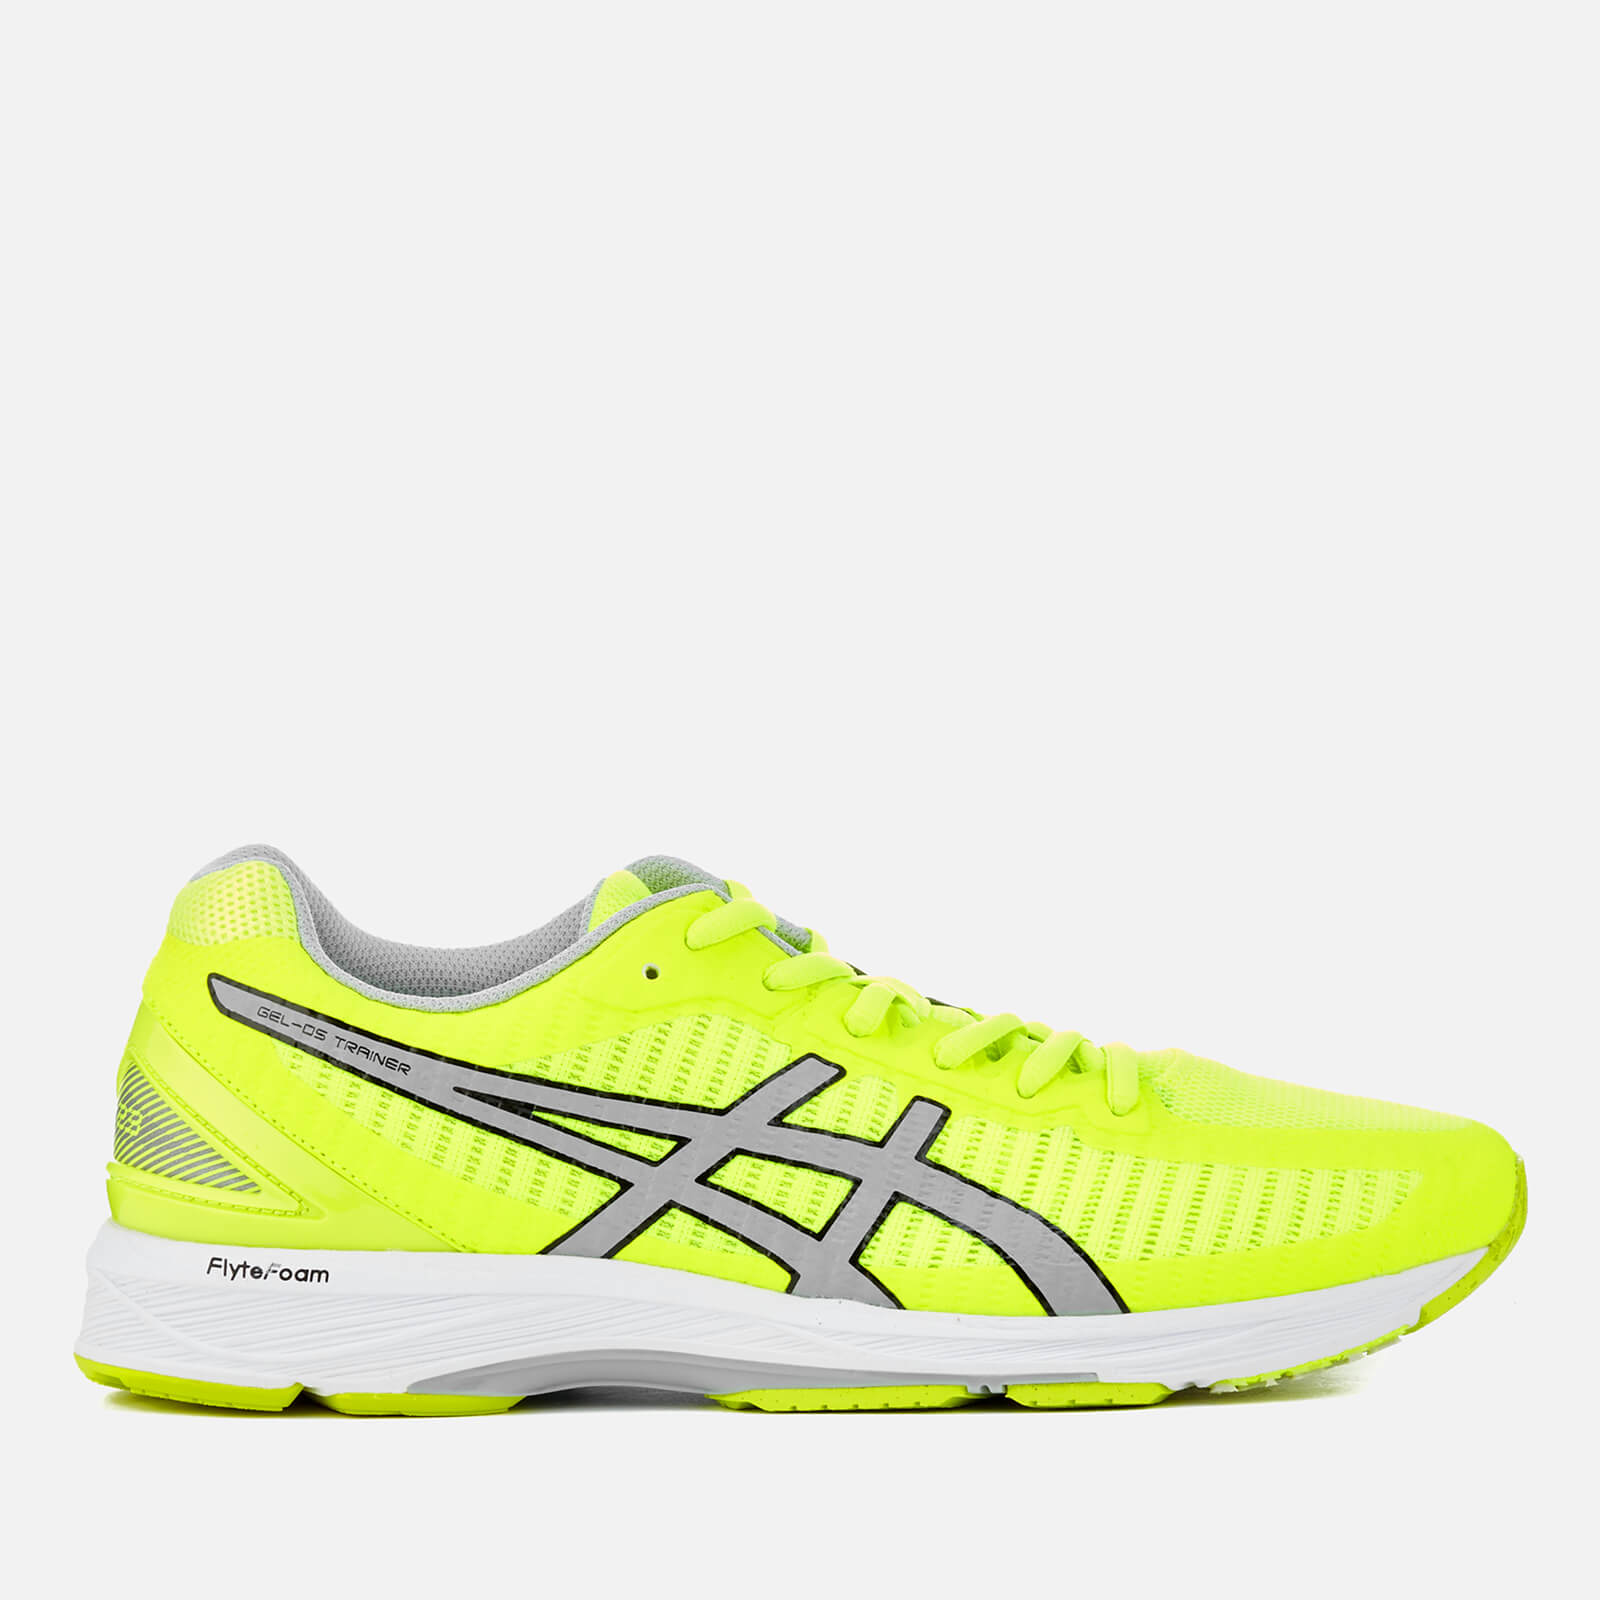 info for a9c33 b8c84 Asics Men's Running Gel-DS Trainer 23 Trainers - Safety Yellow/Mid  Grey/White